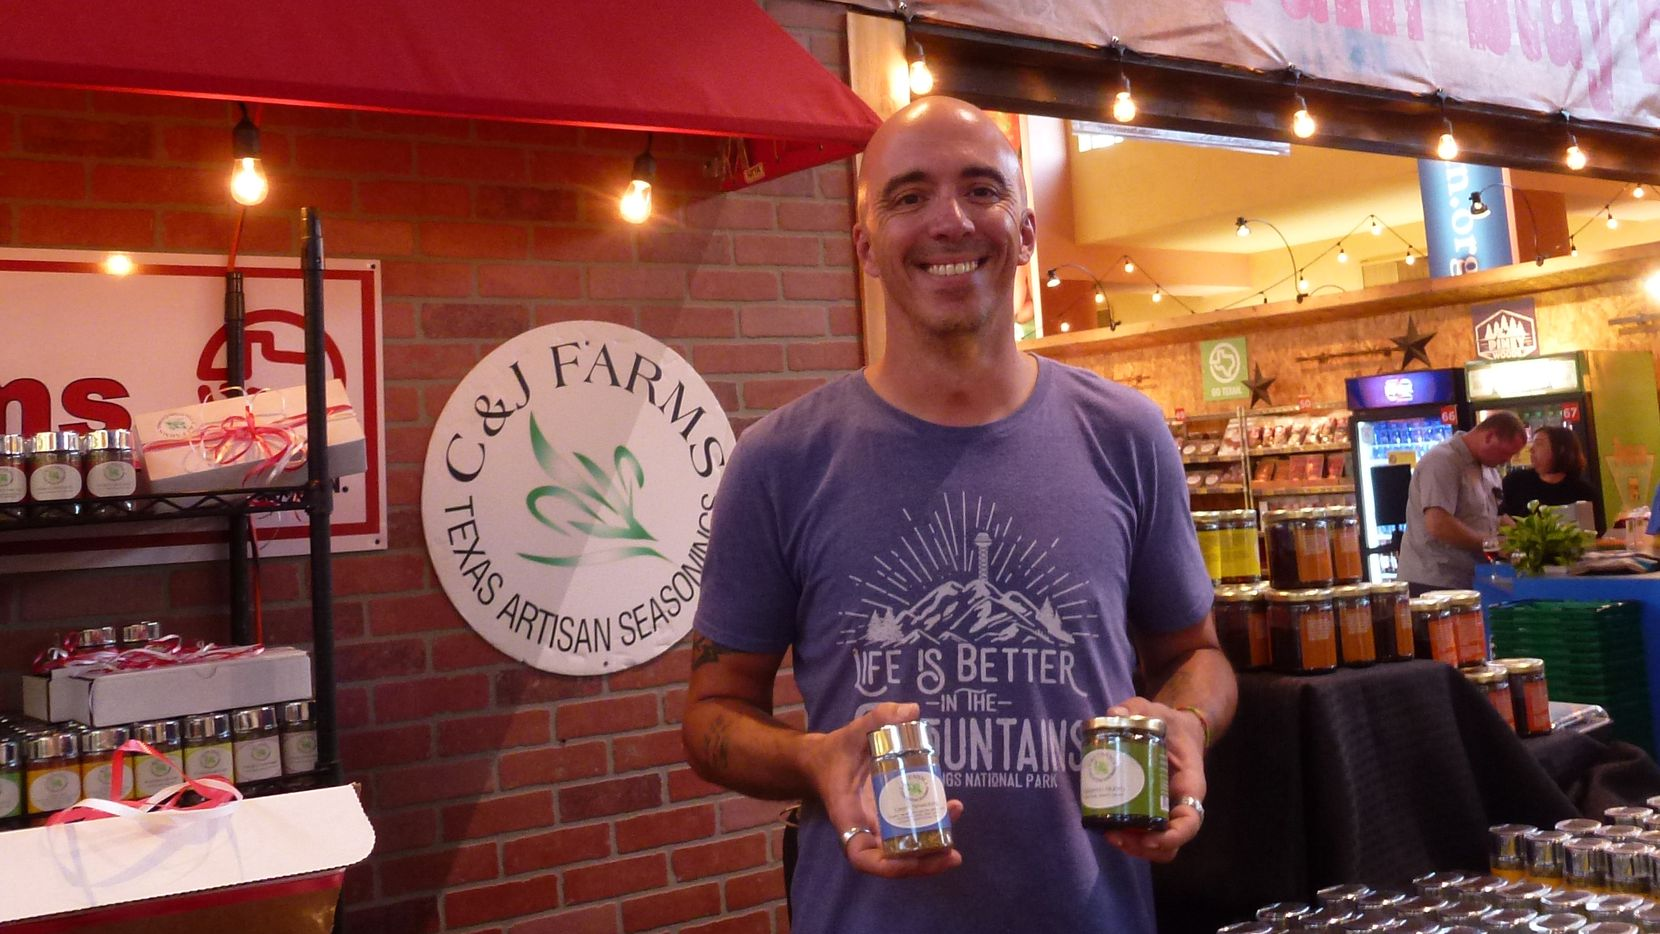 Matthew Tyler helped out at his family's C&J Farms Texas Artisan Seasonings booth at the State Fair of Texas in 2018.